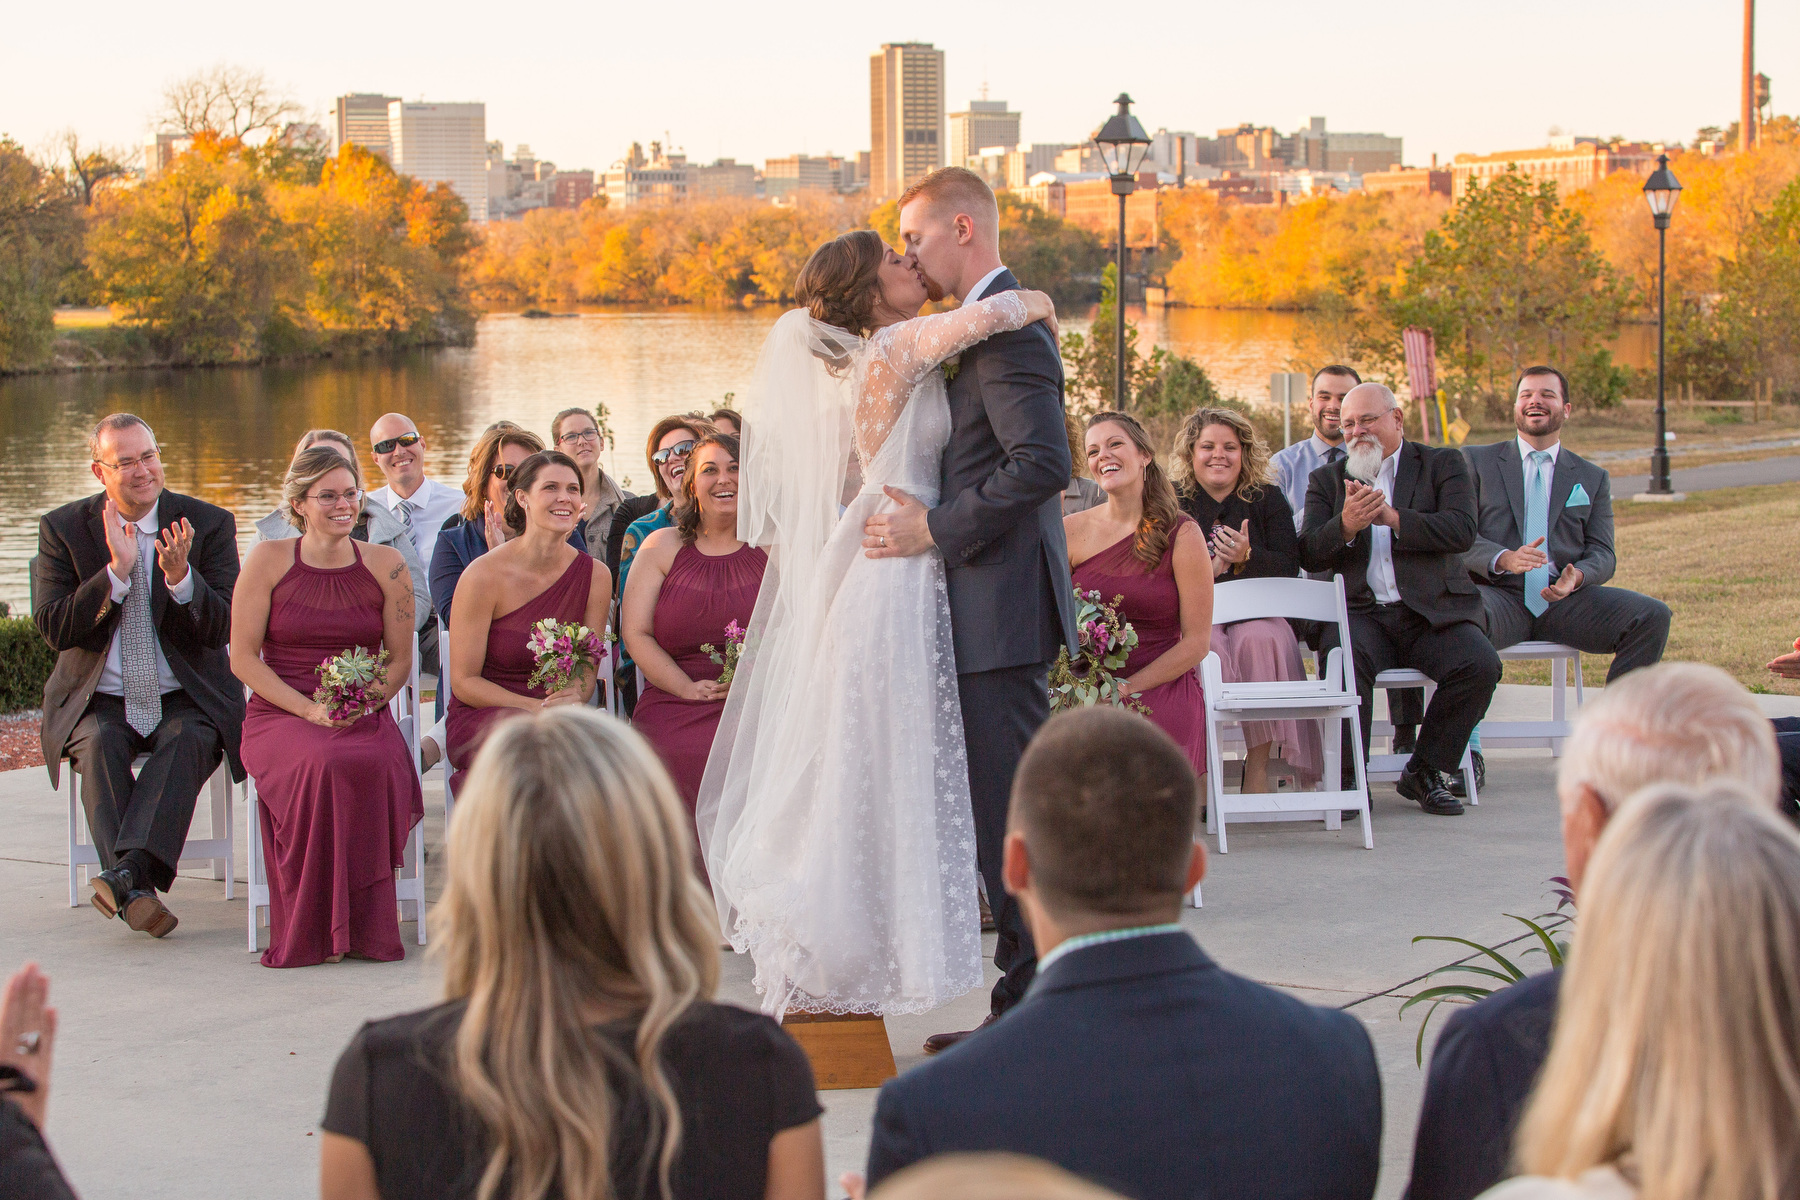 A bride and groom kiss at the close of their wedding ceremony at The Boathouse at Rocketts Landing in Richmond, Va